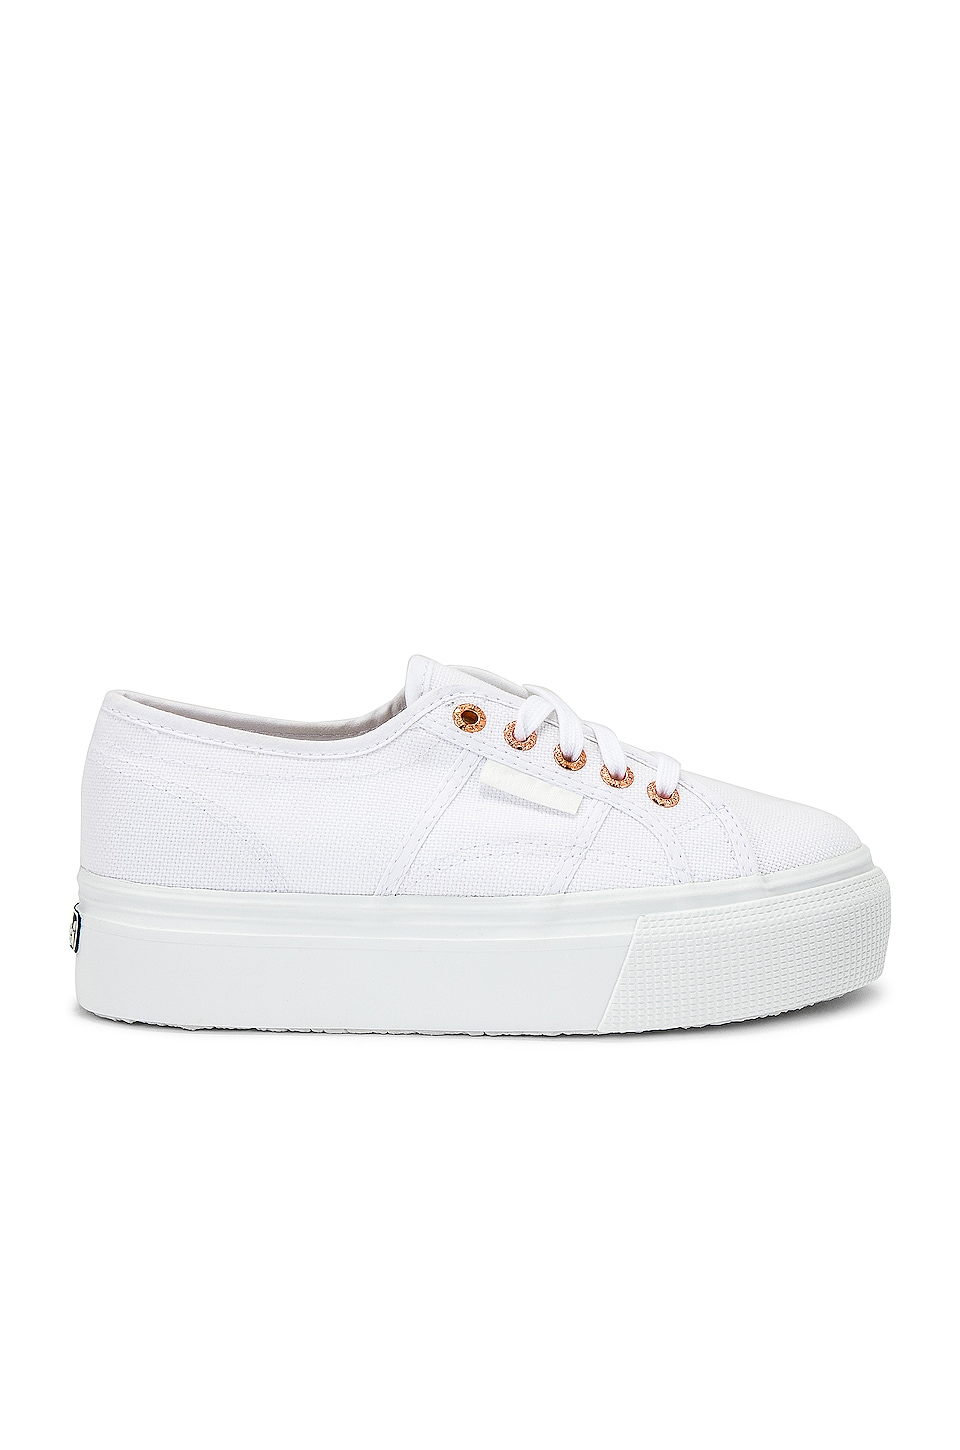 Superga 2790 Platform Sneaker in White & Rose